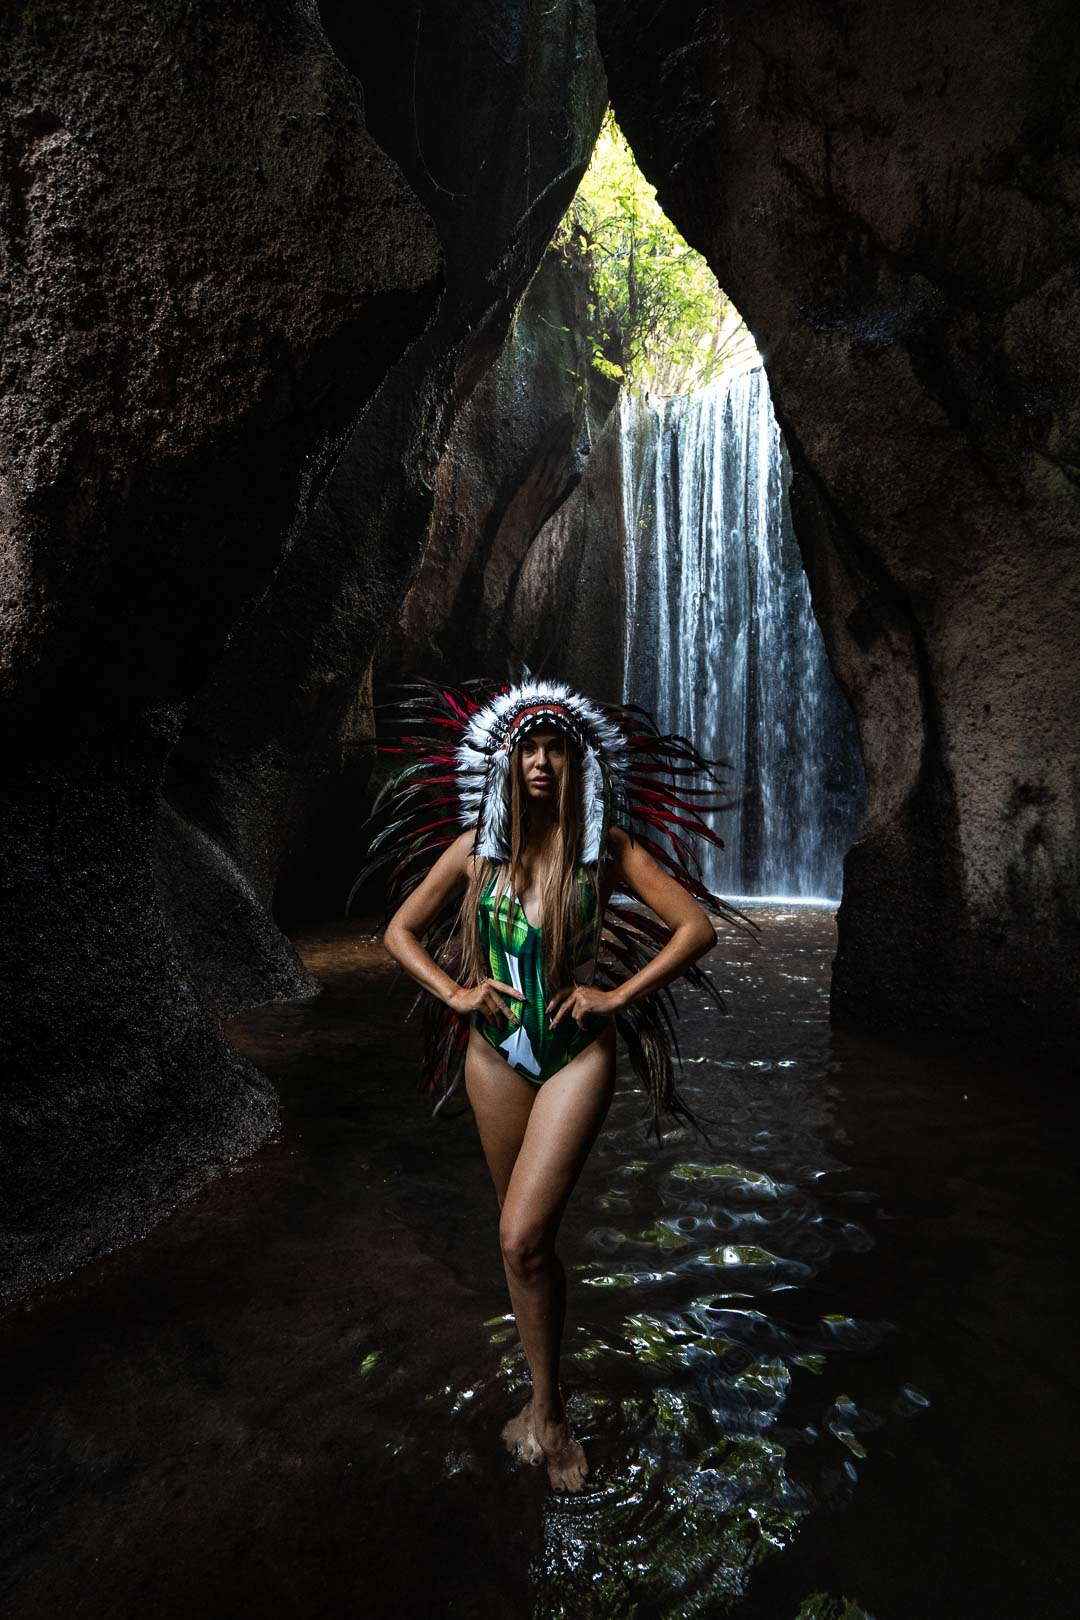 Photograph of a woman with an Indian headdress in a waterfall